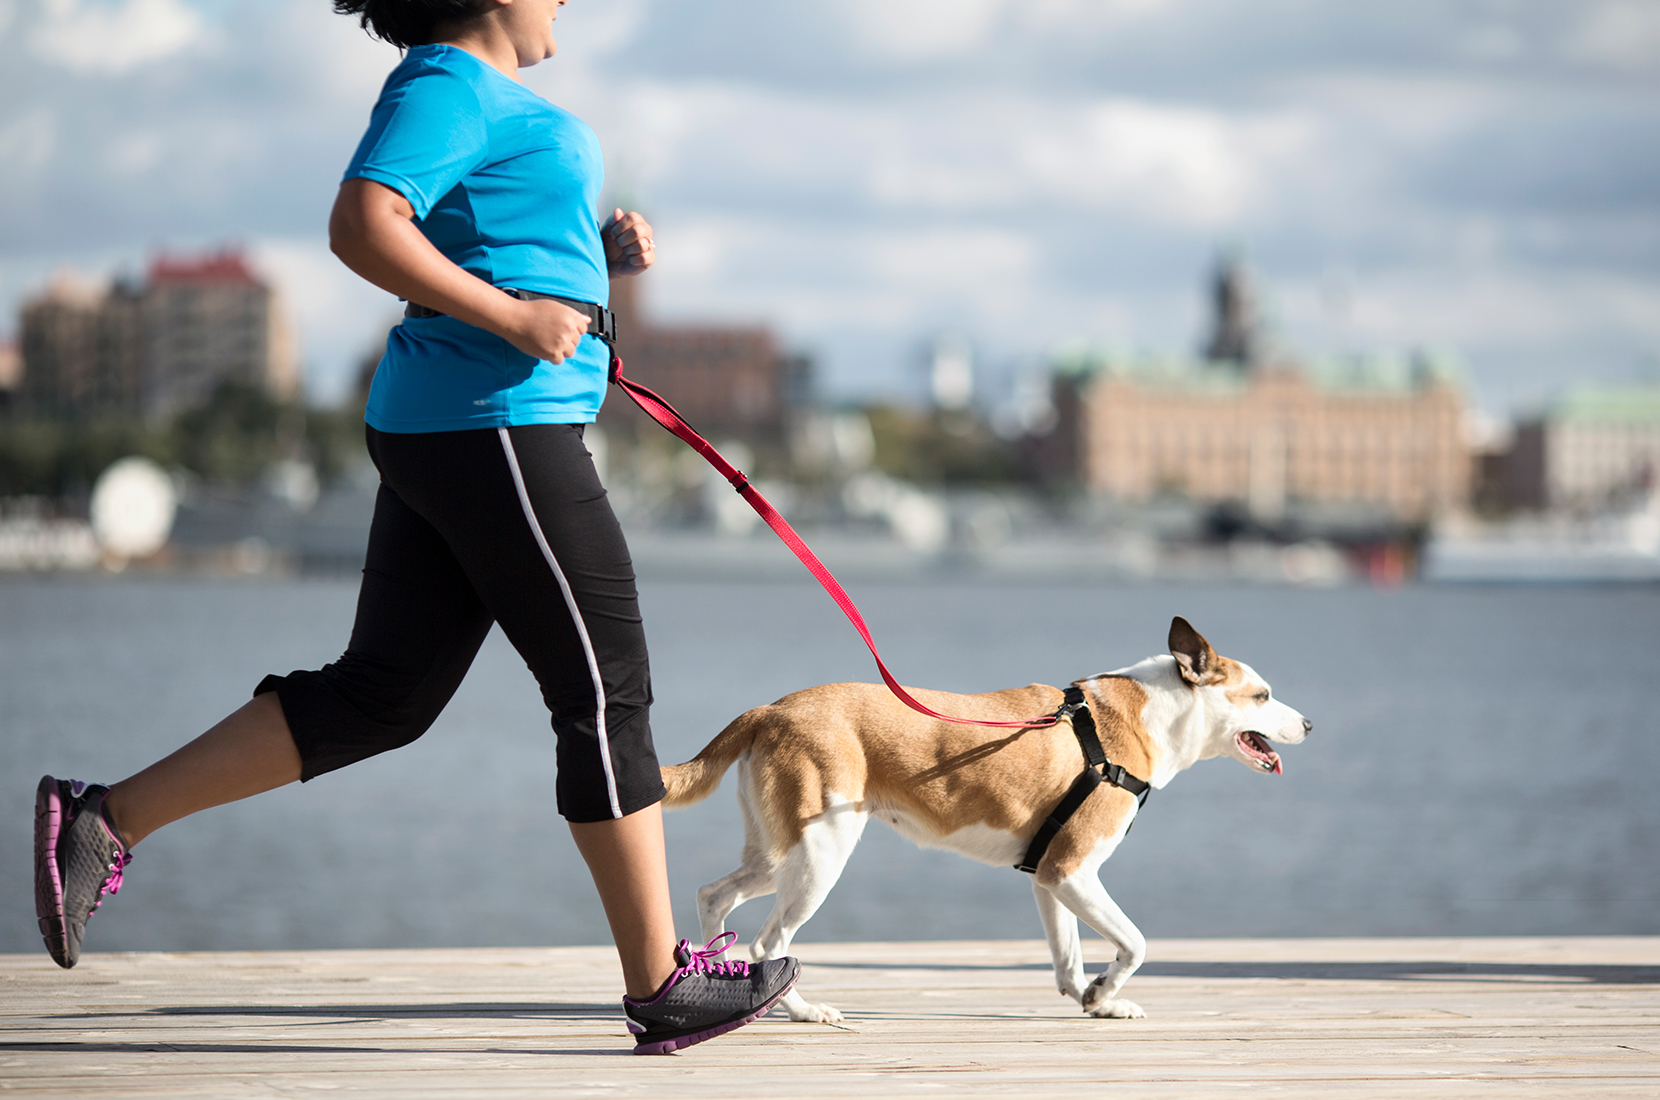 woman running with dog using a harness and leash attached at her waist